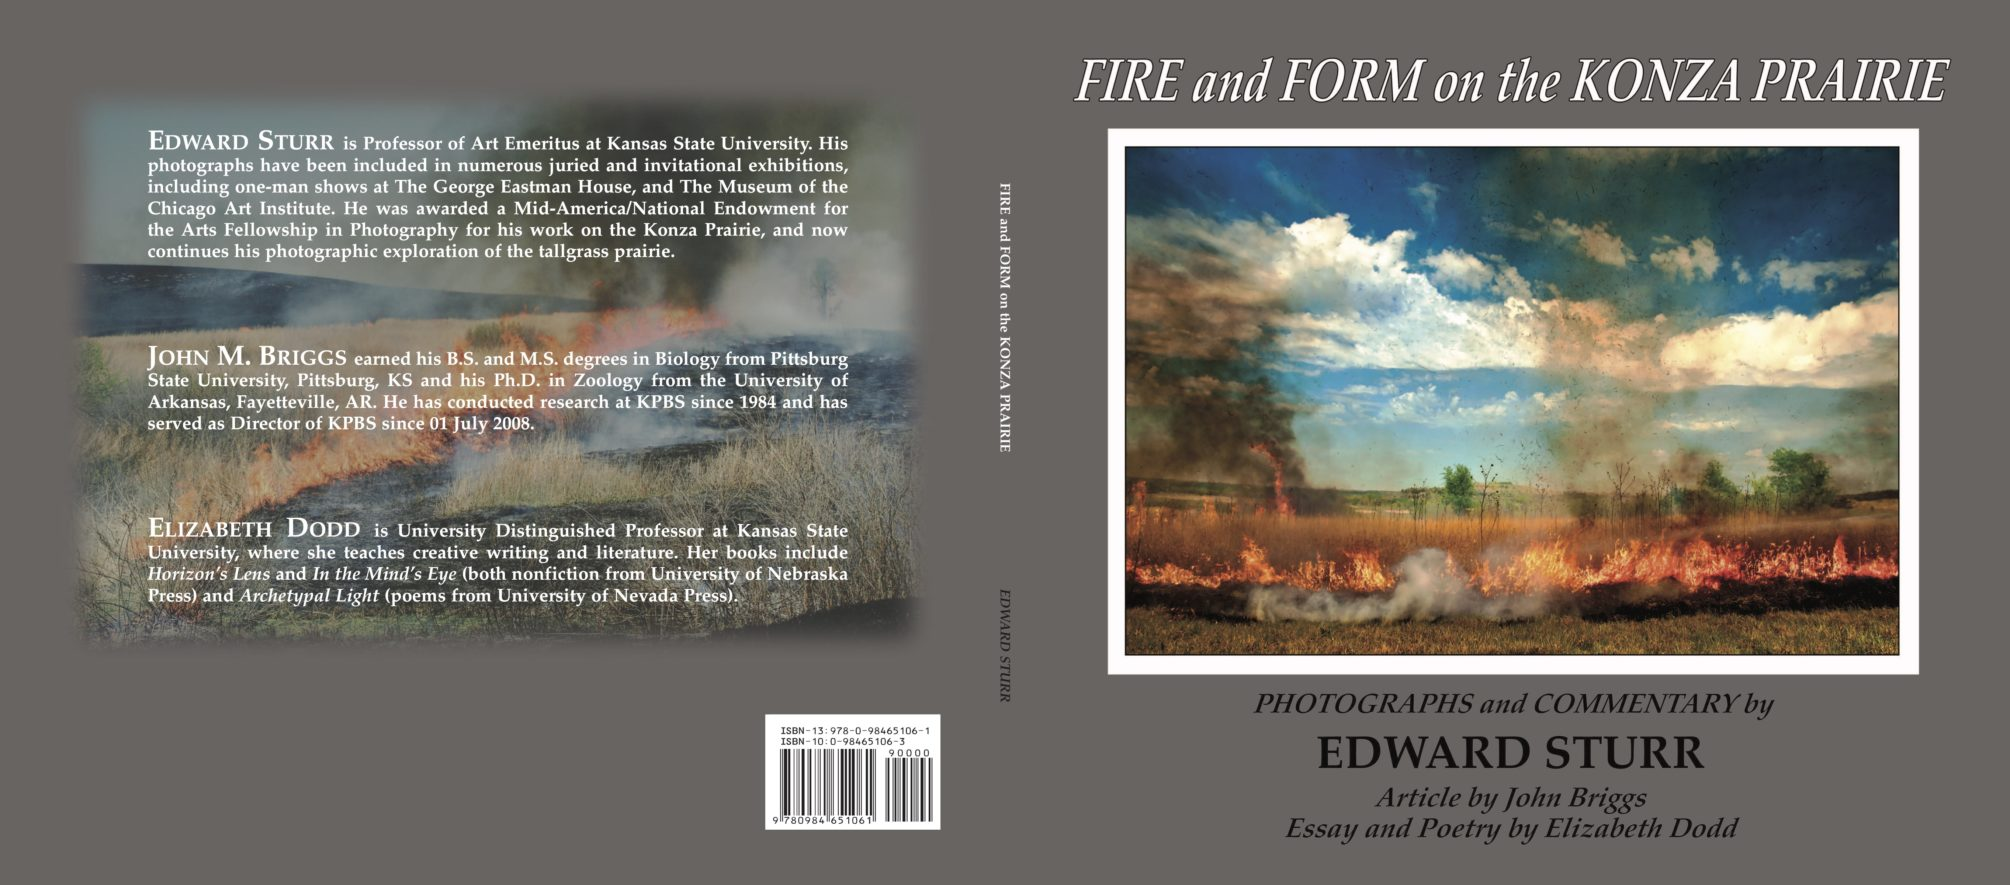 Fire and Form cover